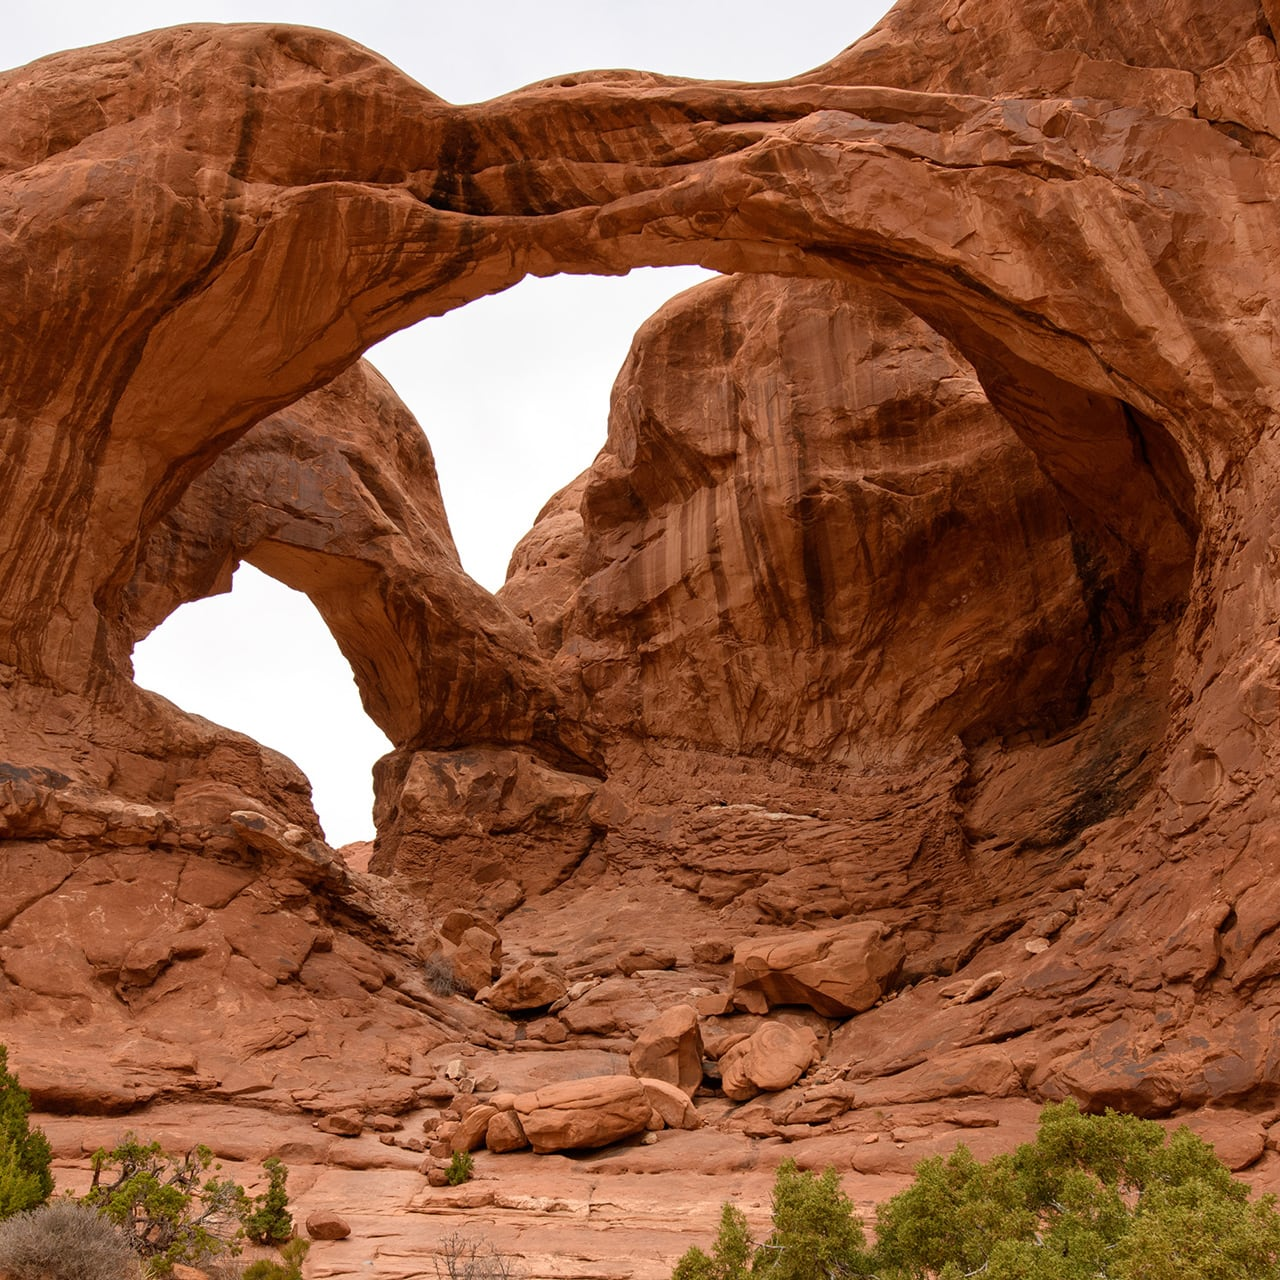 Two arch rock formations in Moab, Utah